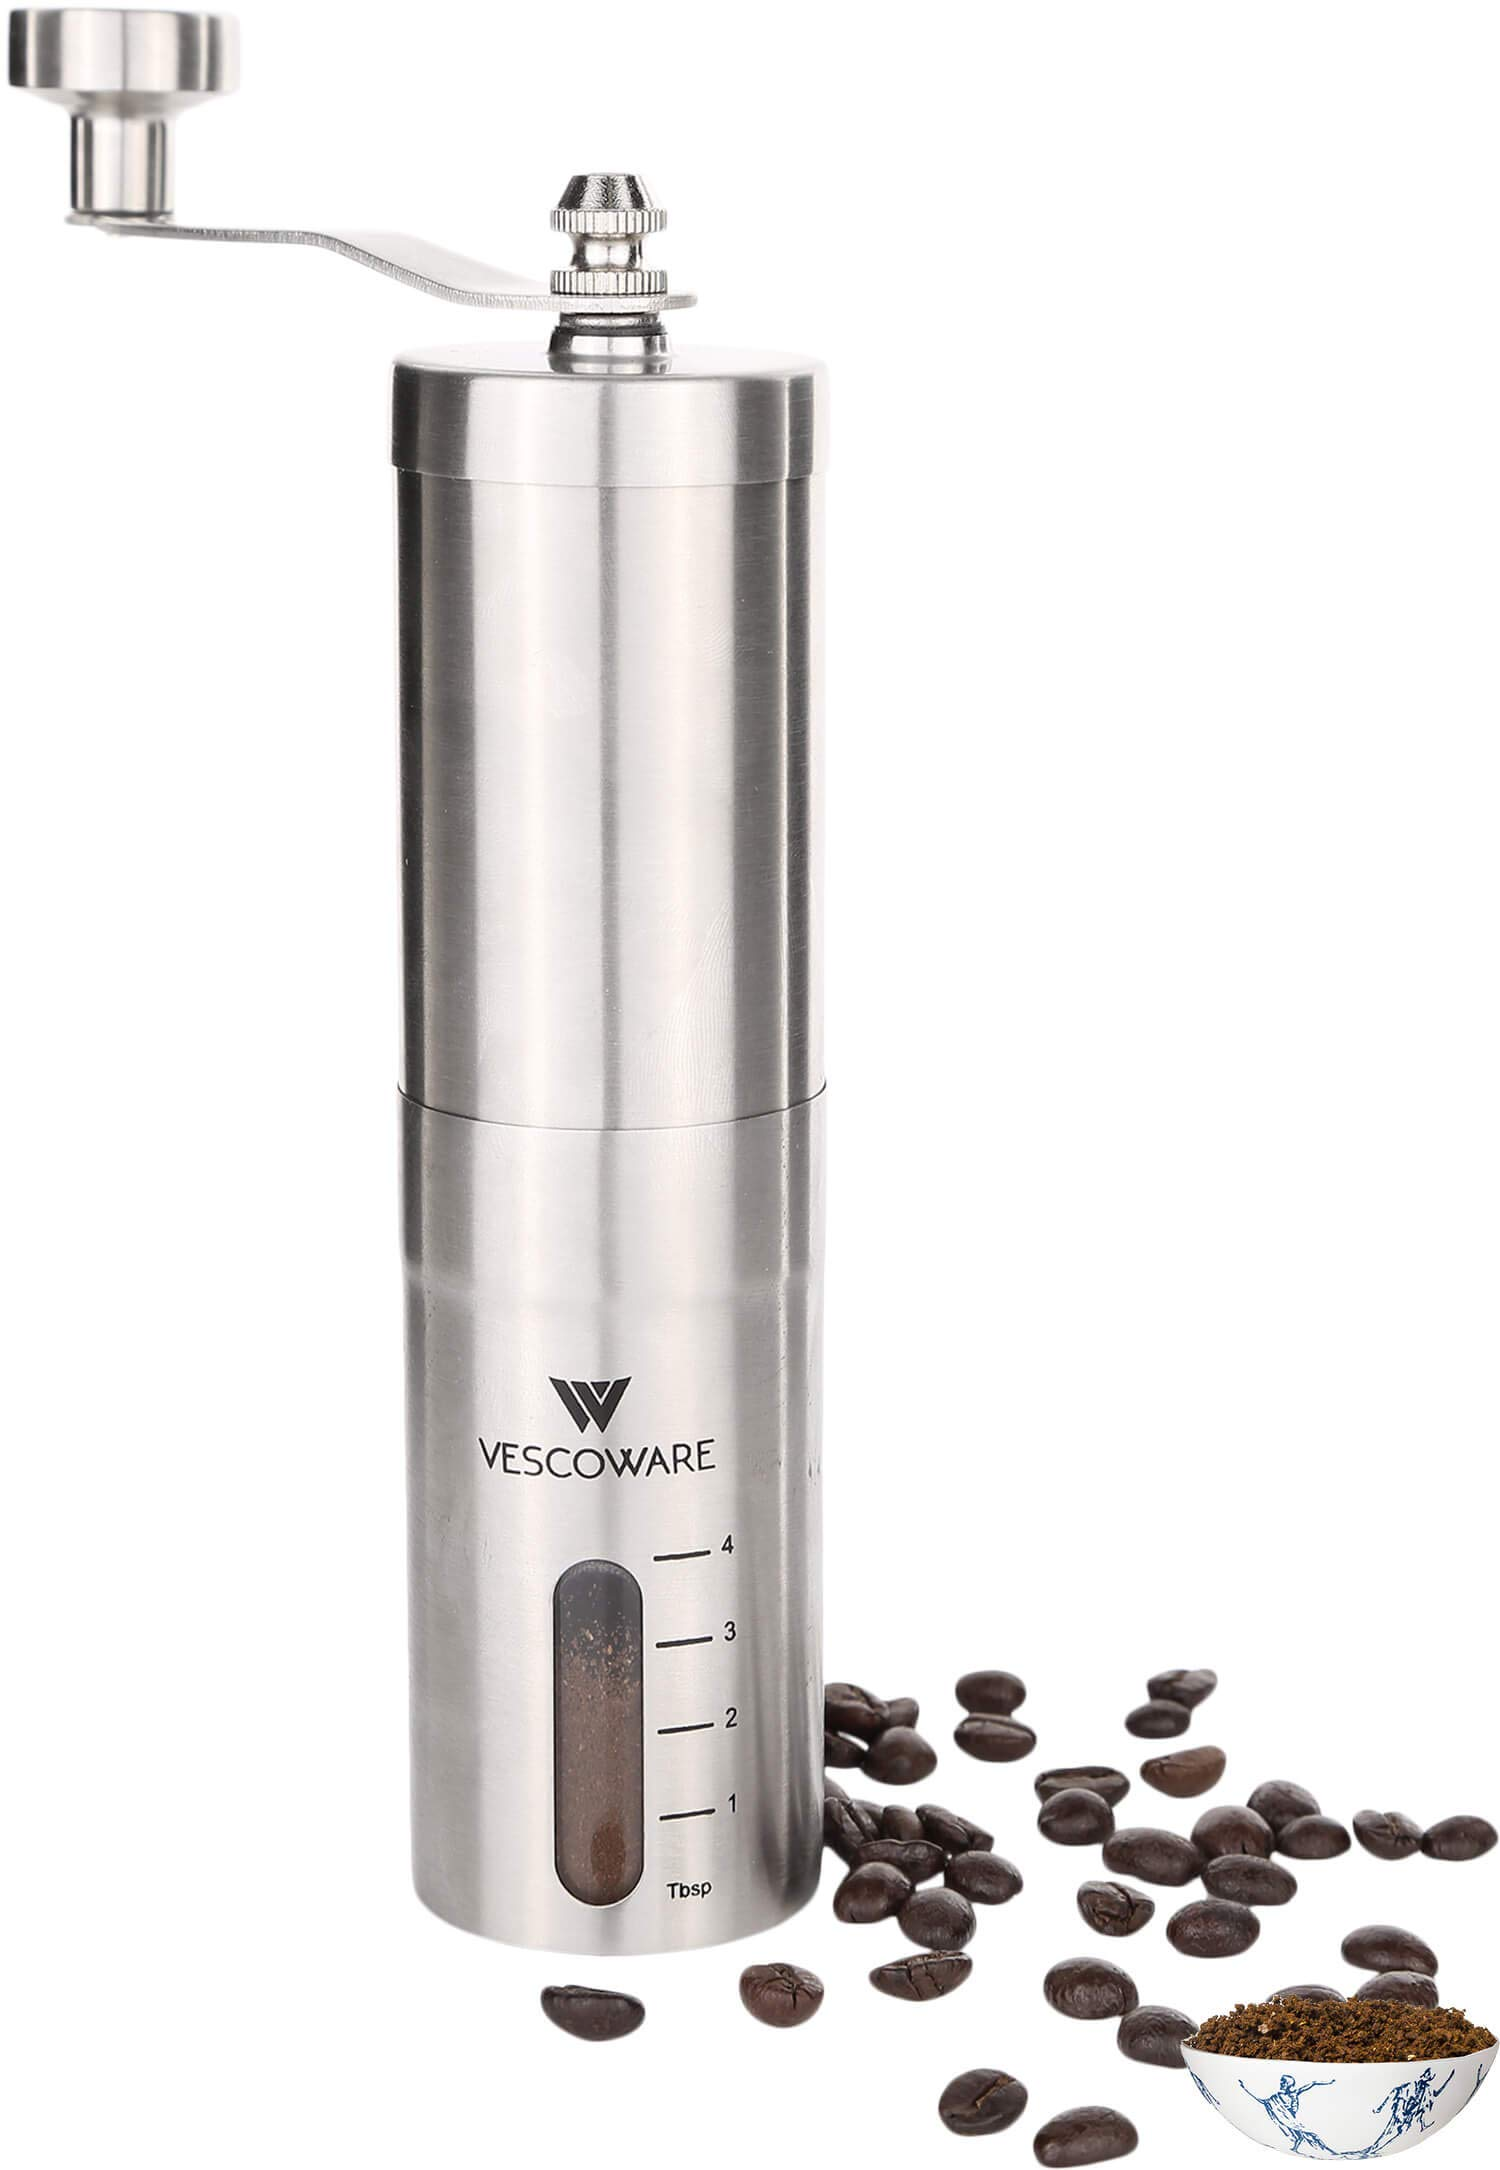 Manual Coffee Grinder - Conical Burr Coffee Grinder with Adjustable Setting - Portable Stainless Steel Hand Mill for Drip Coffee, Espresso, French Press, Cold and Turkish Brew by Vescoware by Vescoware